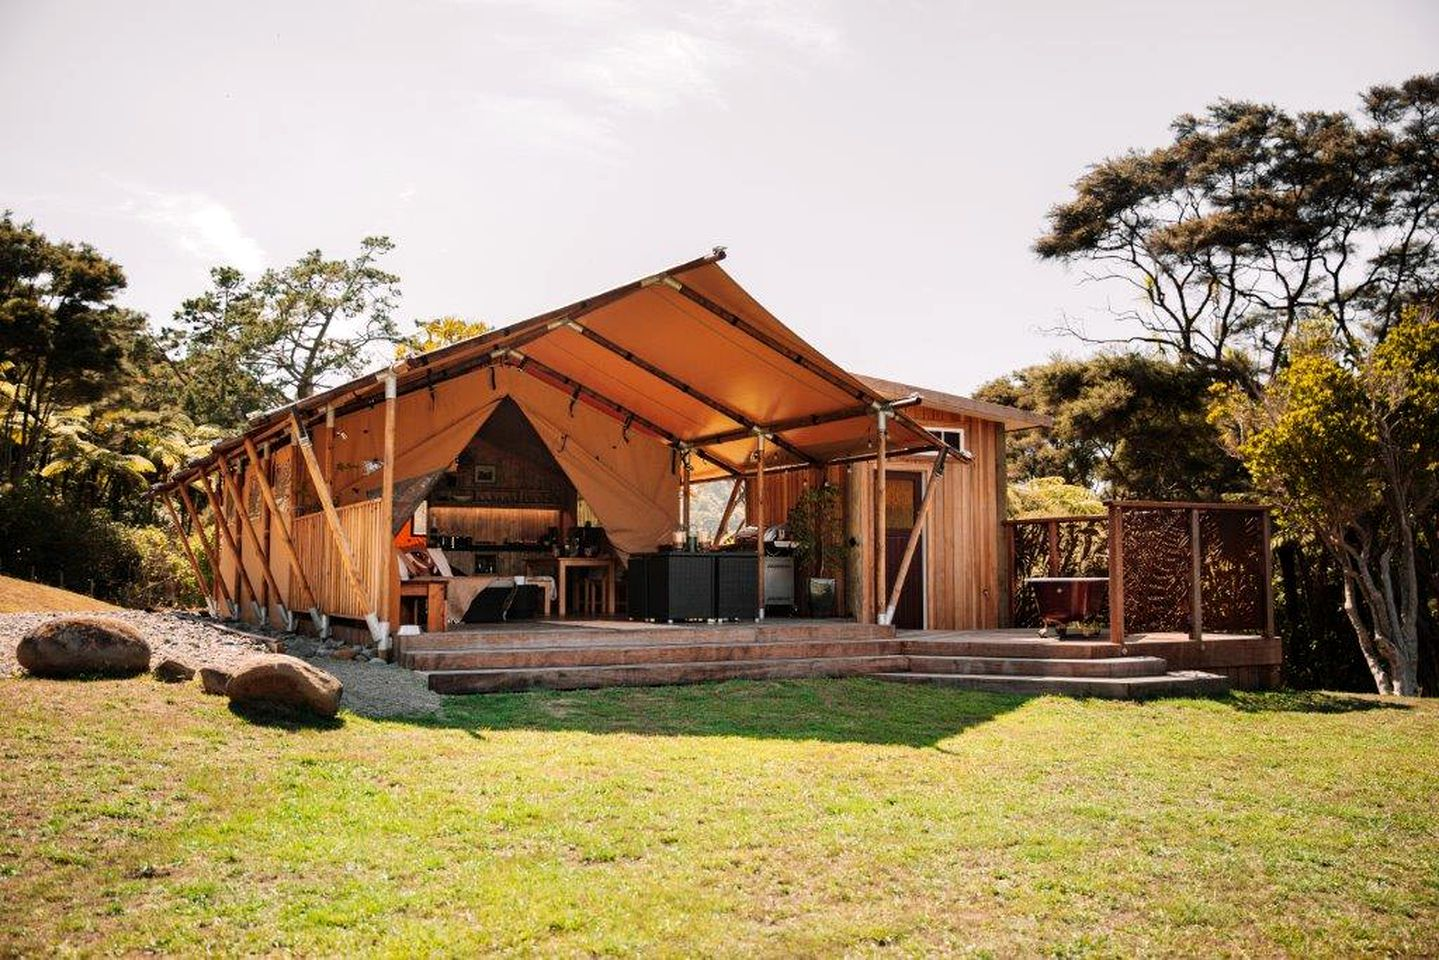 Safari Tents (Auckland, North Island, New Zealand)